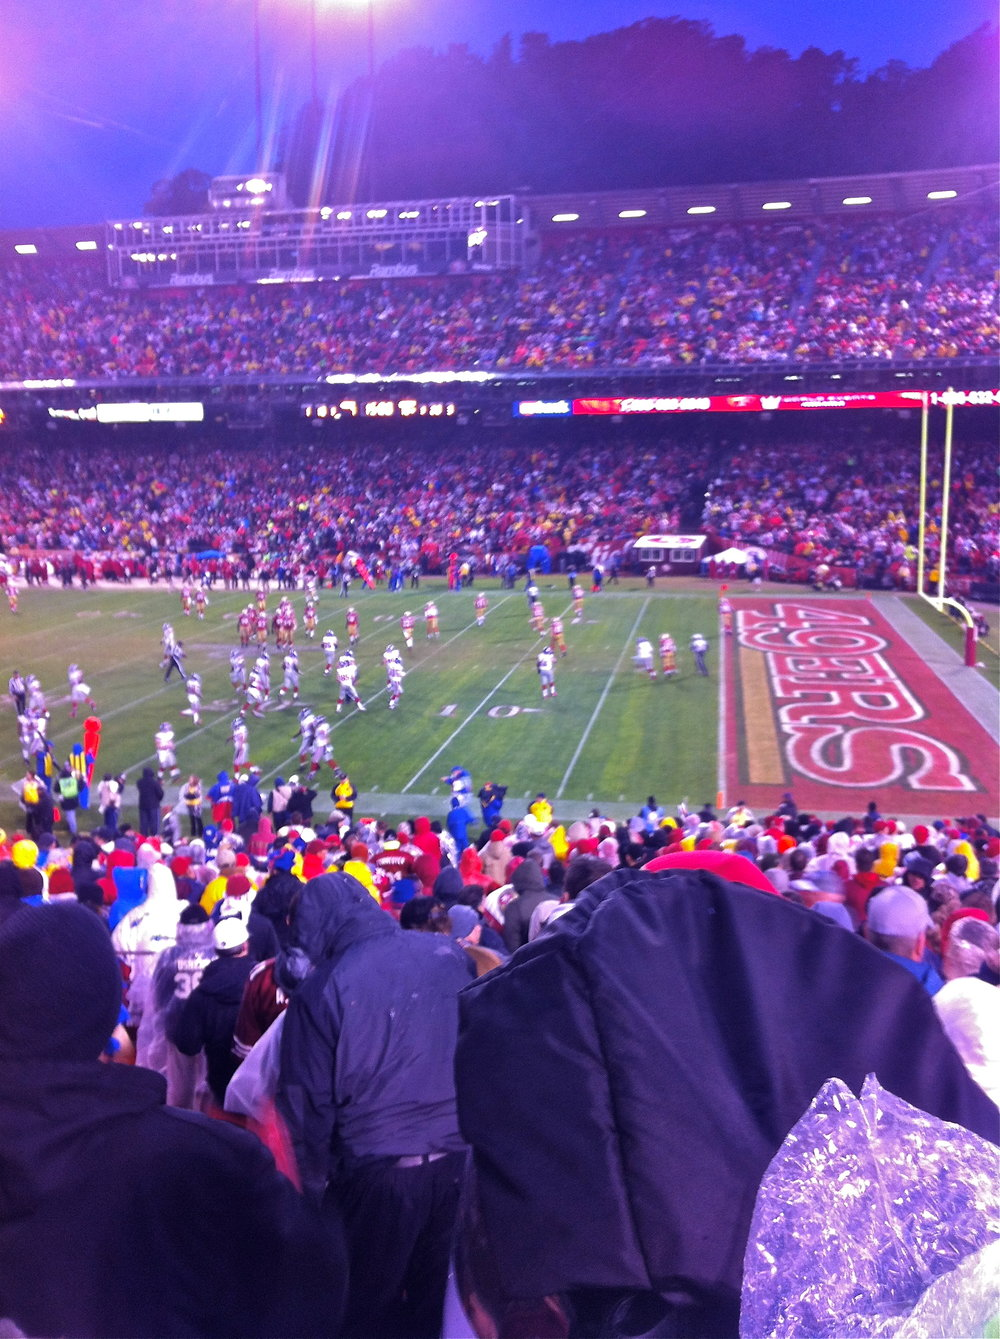 Even colder and more miserable at Candlestick